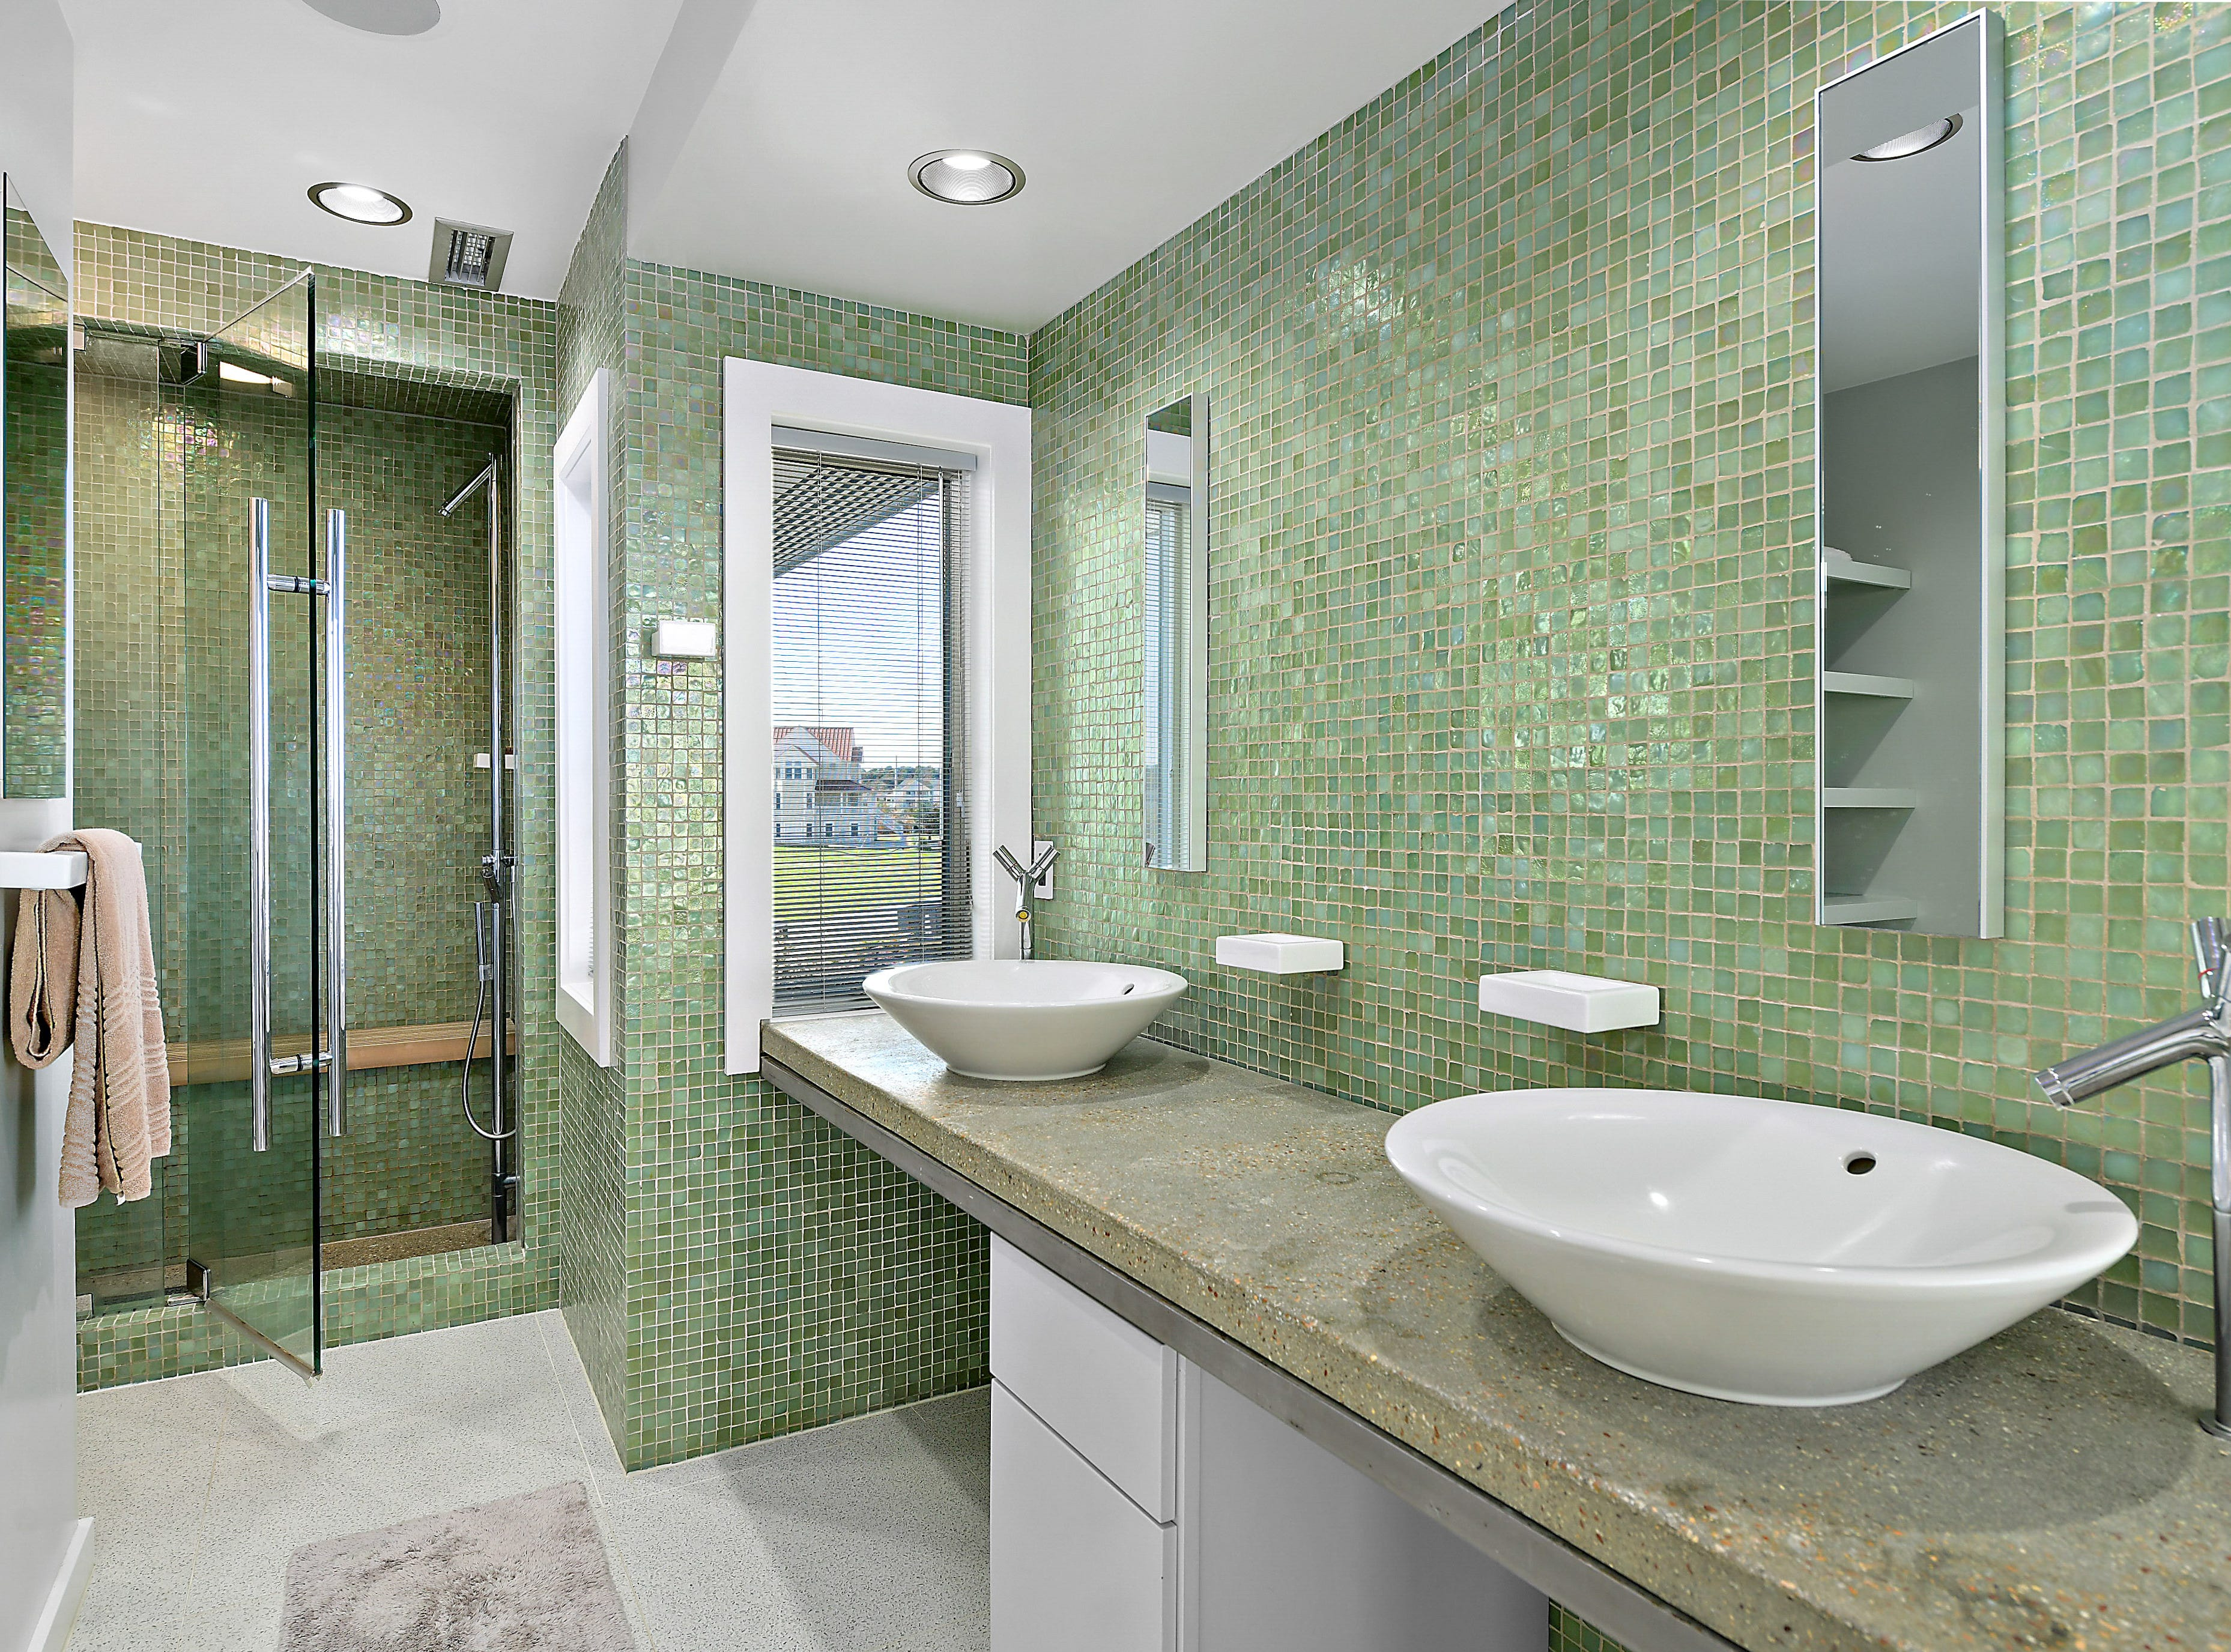 A bathroom in a five-bedroom home on Old Bridge Road in Ocean City that is listed for $3.6 million.